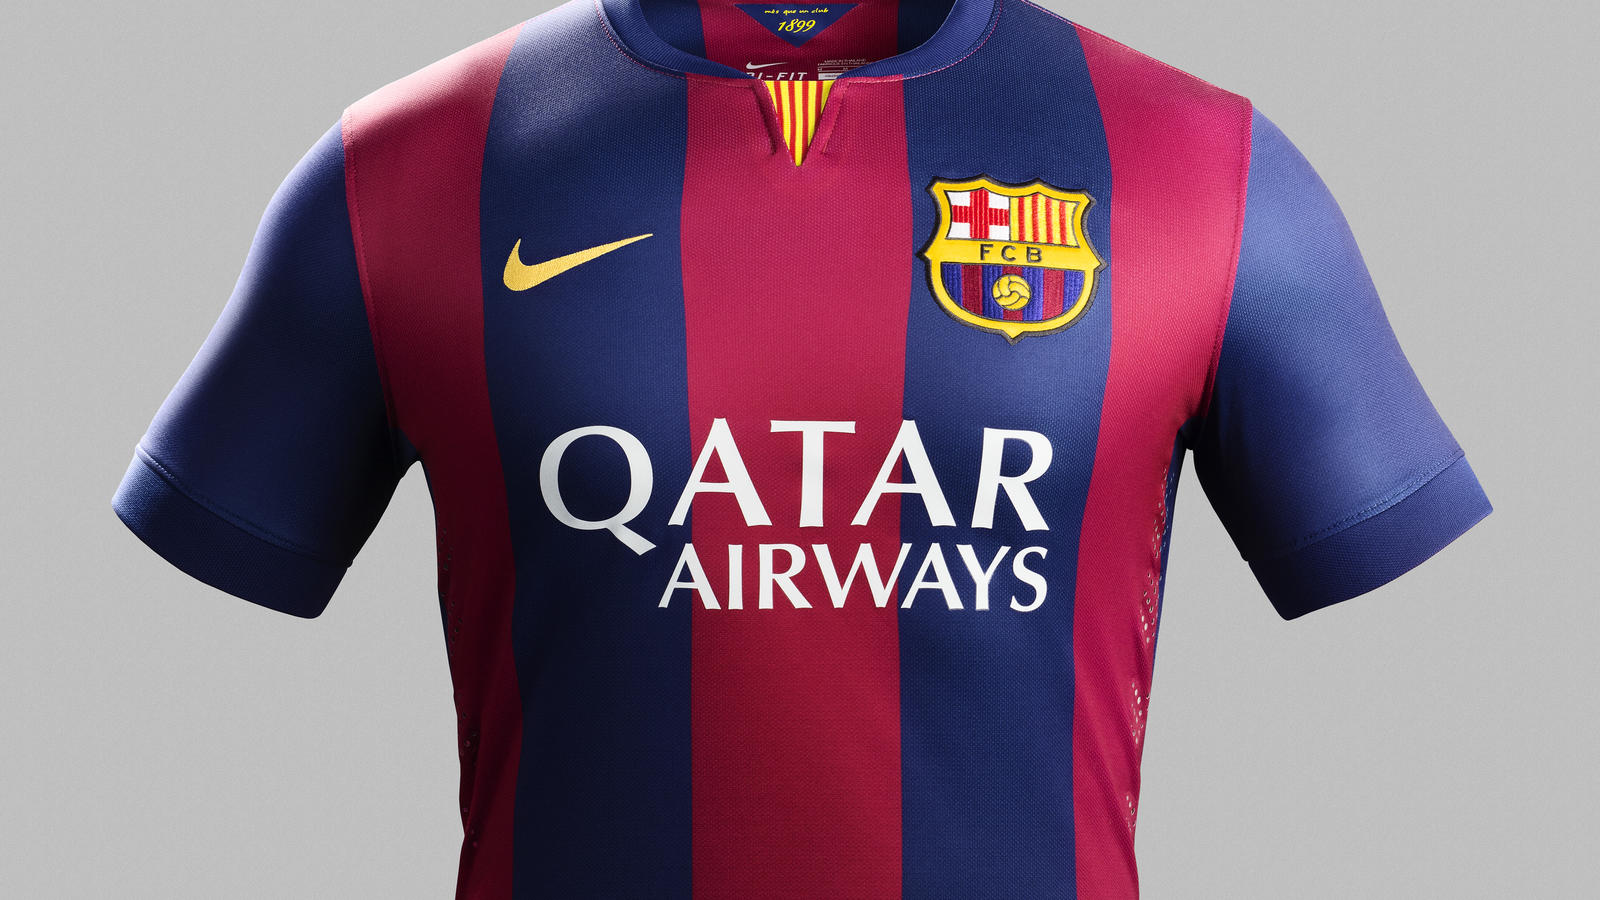 News Season Fc Unveil Barcelona 2014 15 New And Kit For Home Nike HZRxPvH fc2ae0bc2e5a0